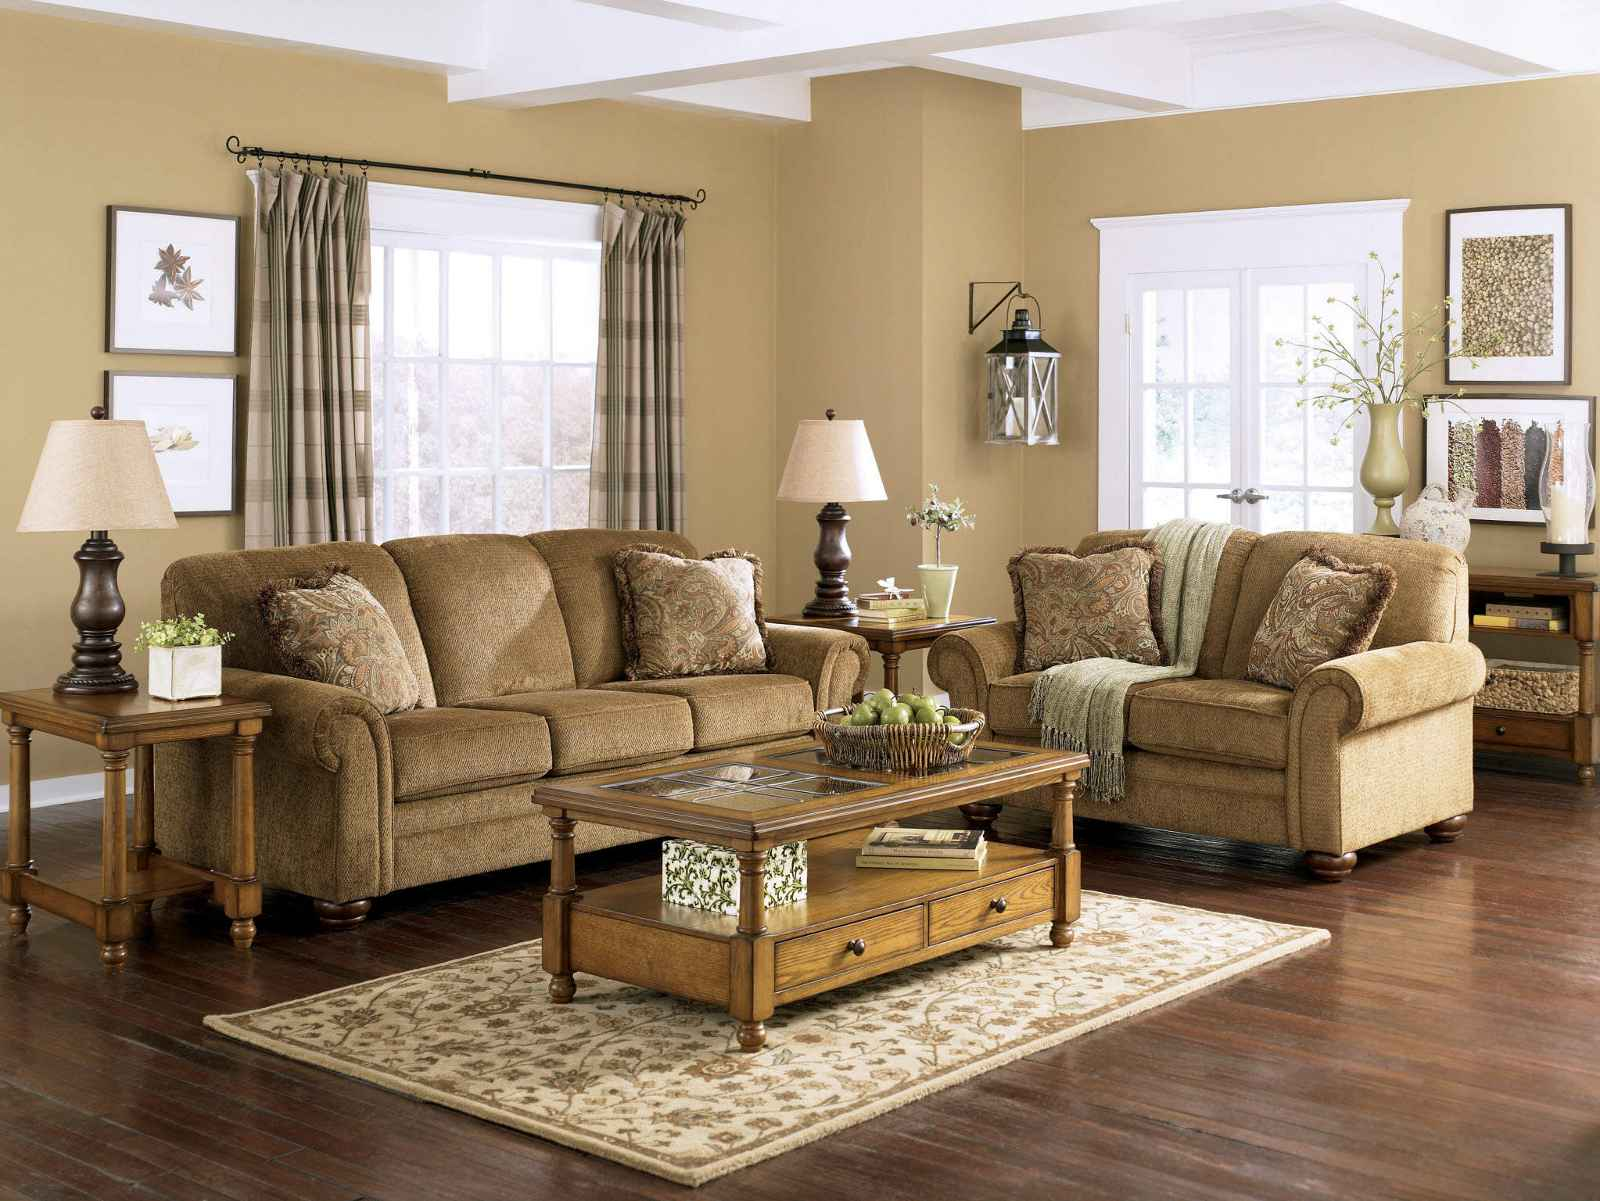 Amazing Ashley Furniture Living Room Sets 1600 x 1201 · 156 kB · jpeg